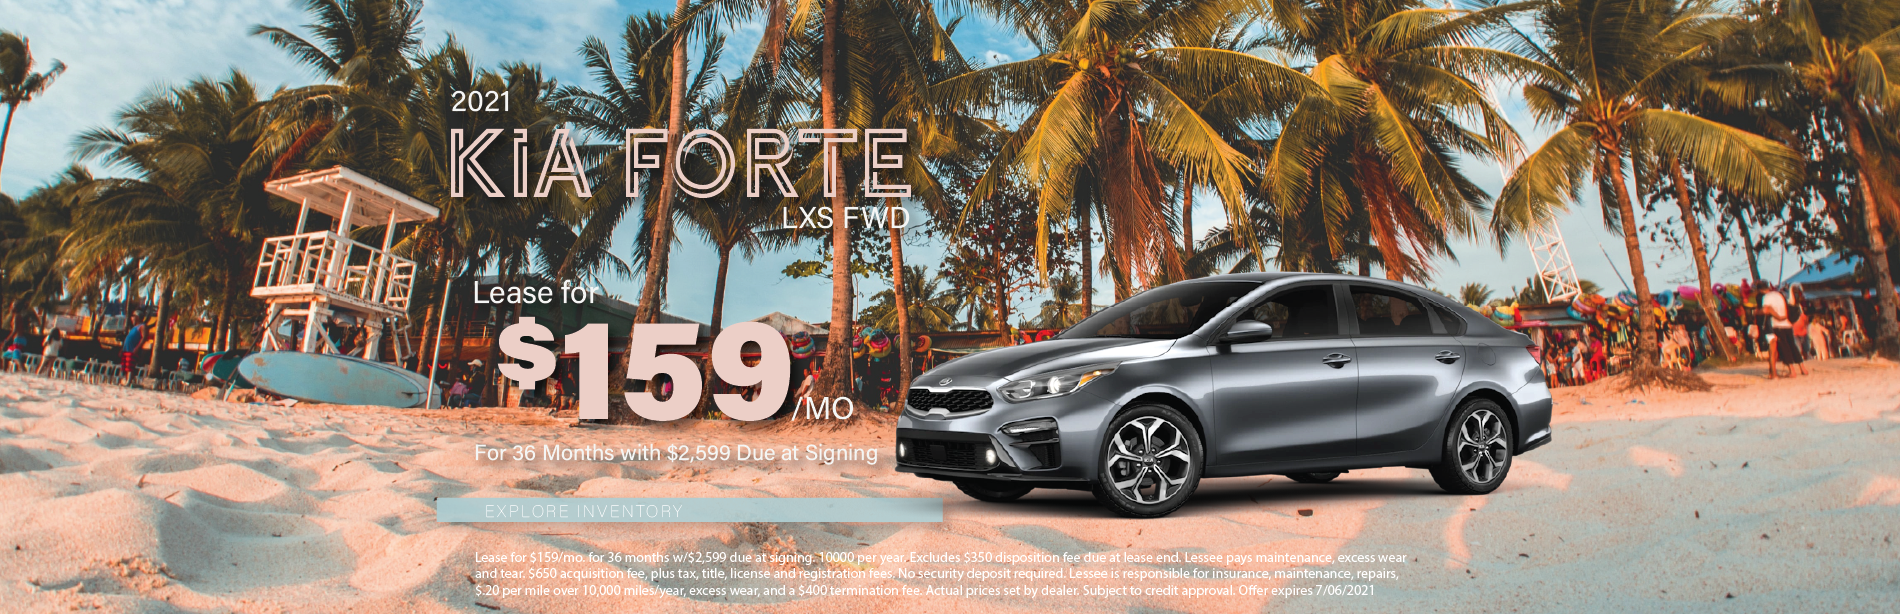 Lafontaine Kia Forte – May